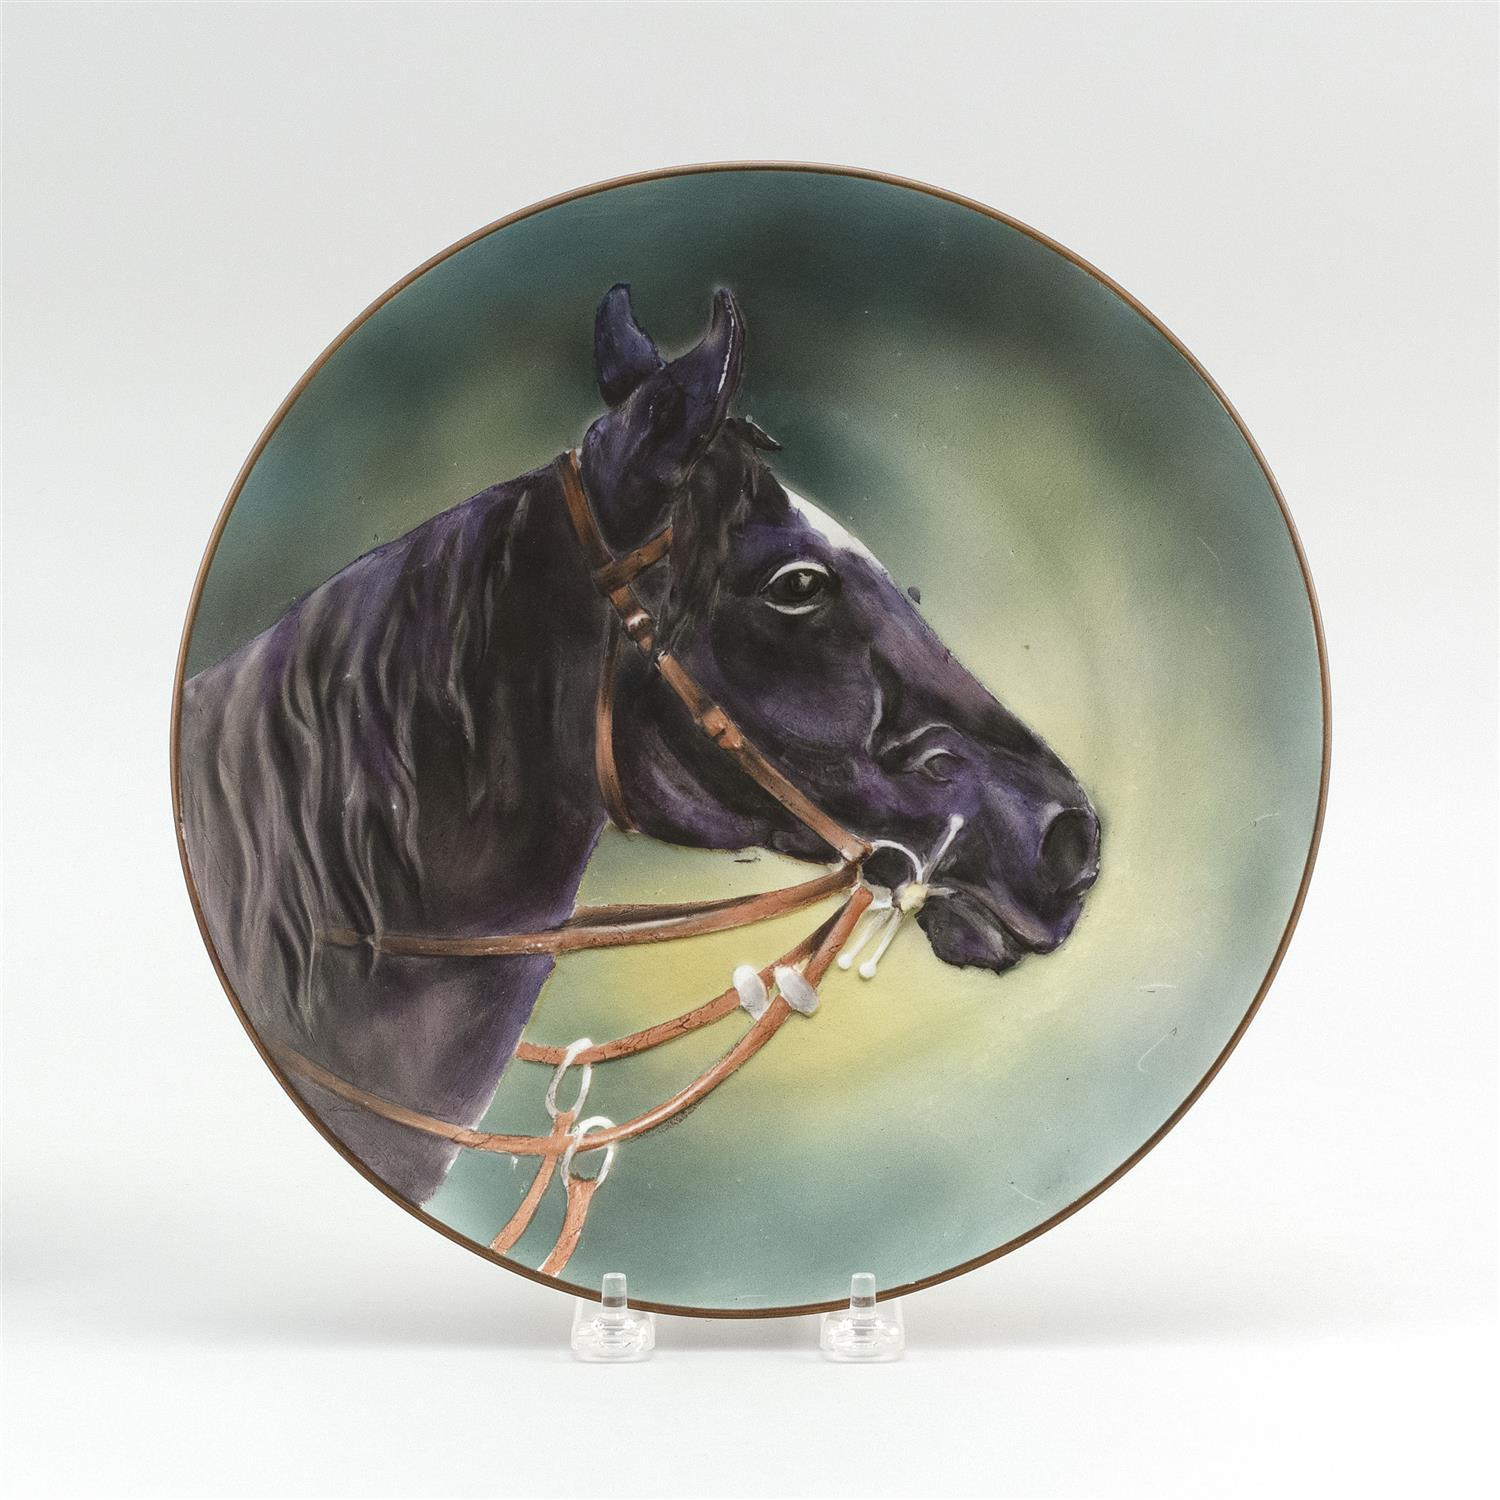 "MOLDED NIPPON PORCELAIN PLAQUE With blown out design of a horse. Van Patten #47 mark on base. Diameter 10.5""."